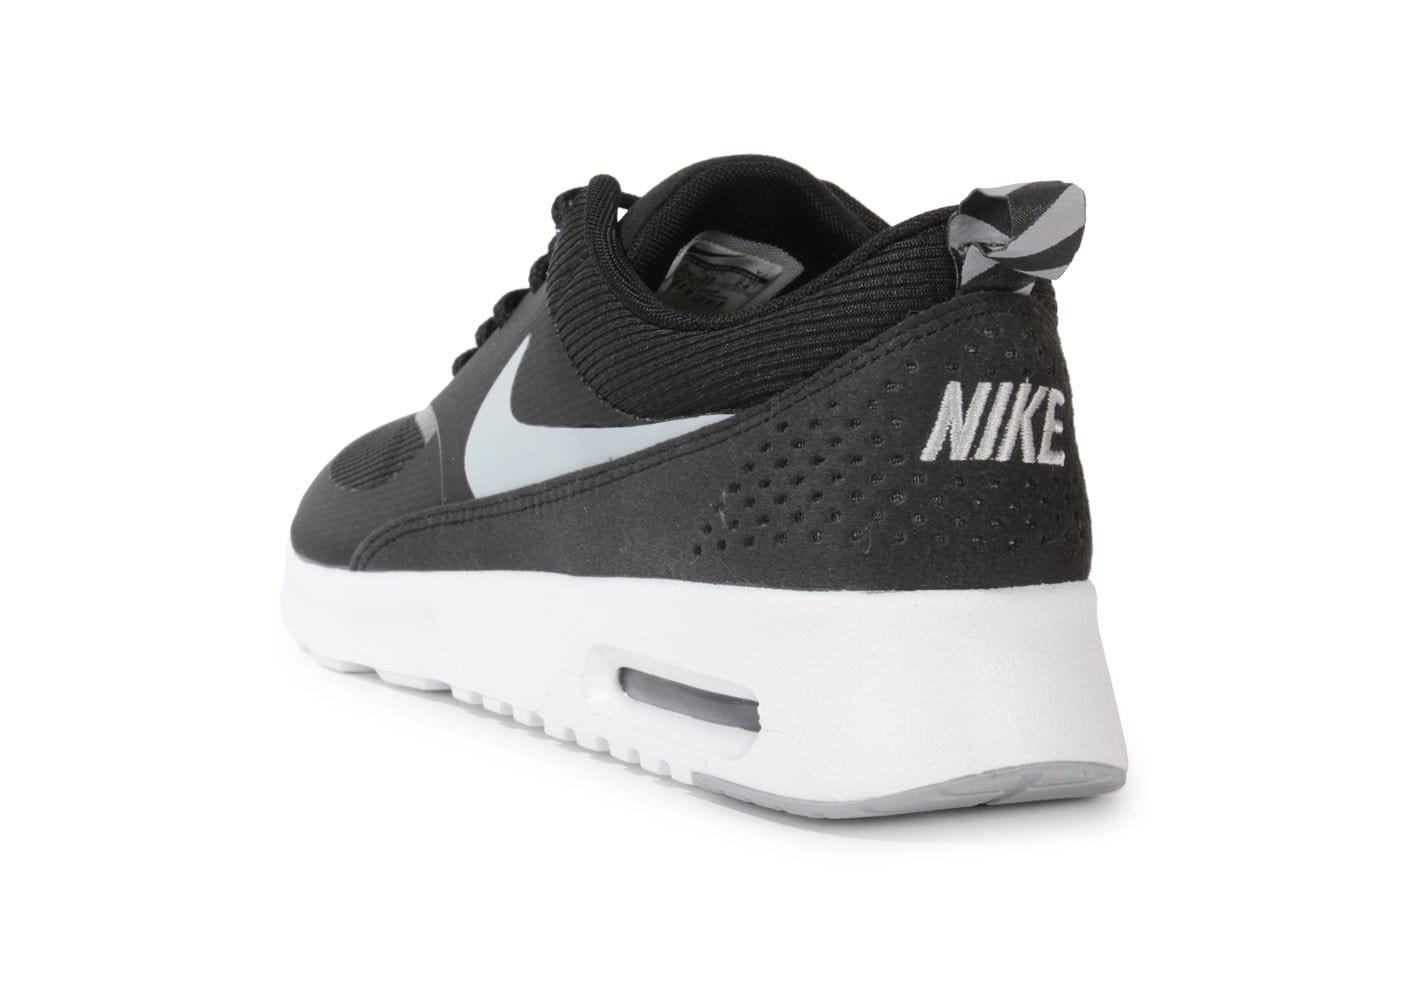 nike air max thea noire blanche chaussures toutes les baskets sold es chausport. Black Bedroom Furniture Sets. Home Design Ideas